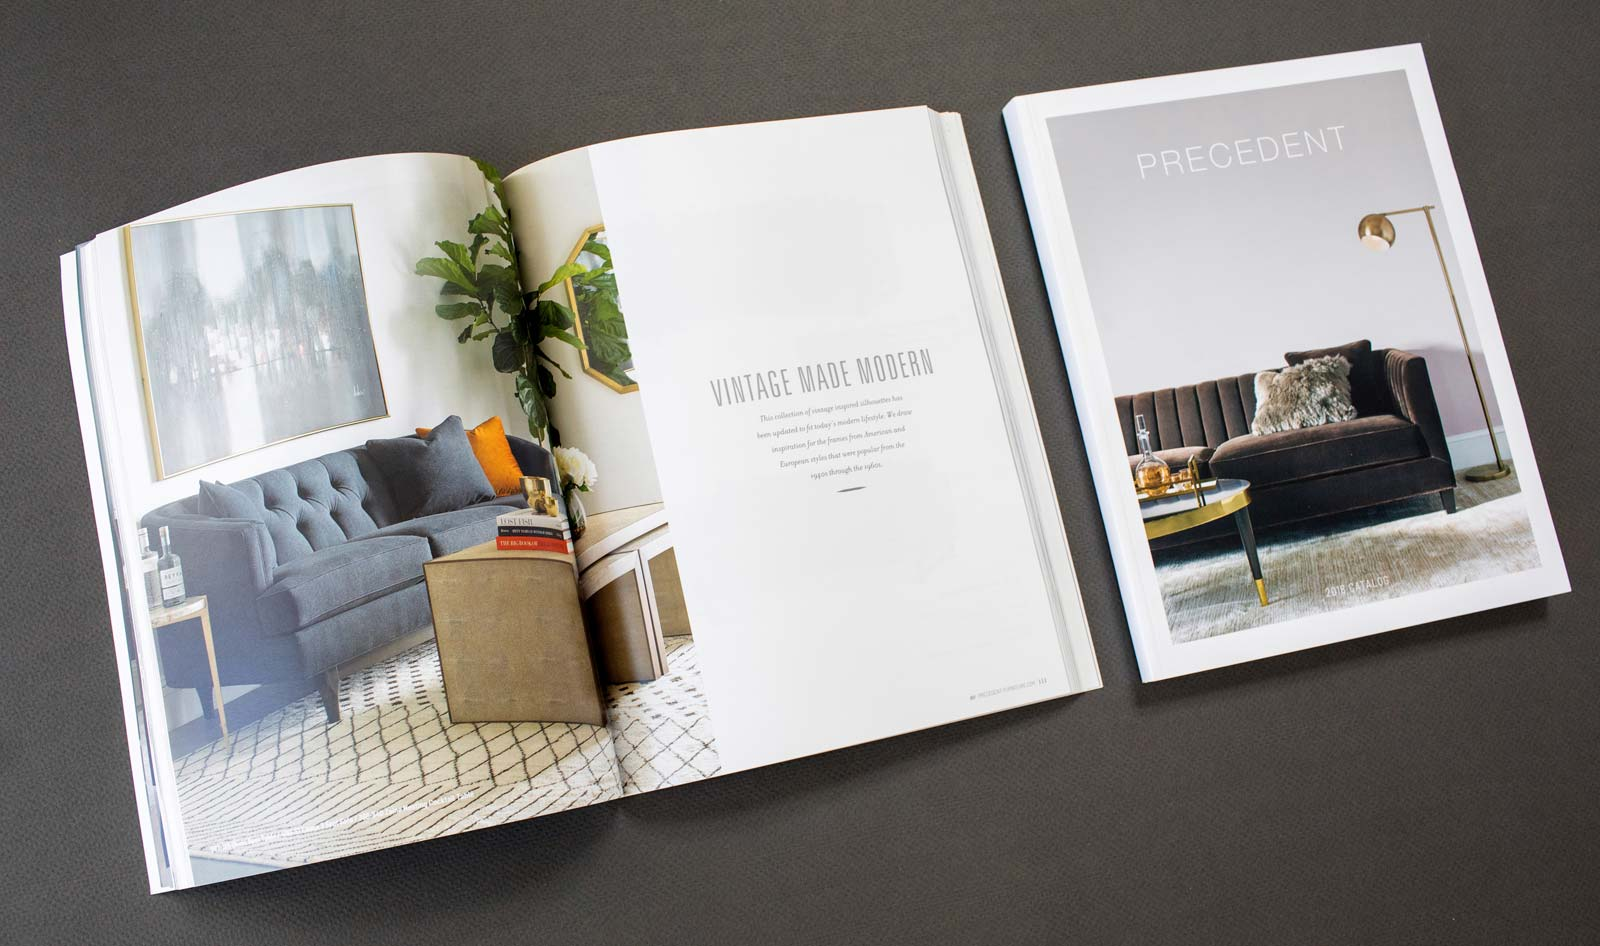 Precedent Furniture catalog spread and cover with blue and gray sofa.